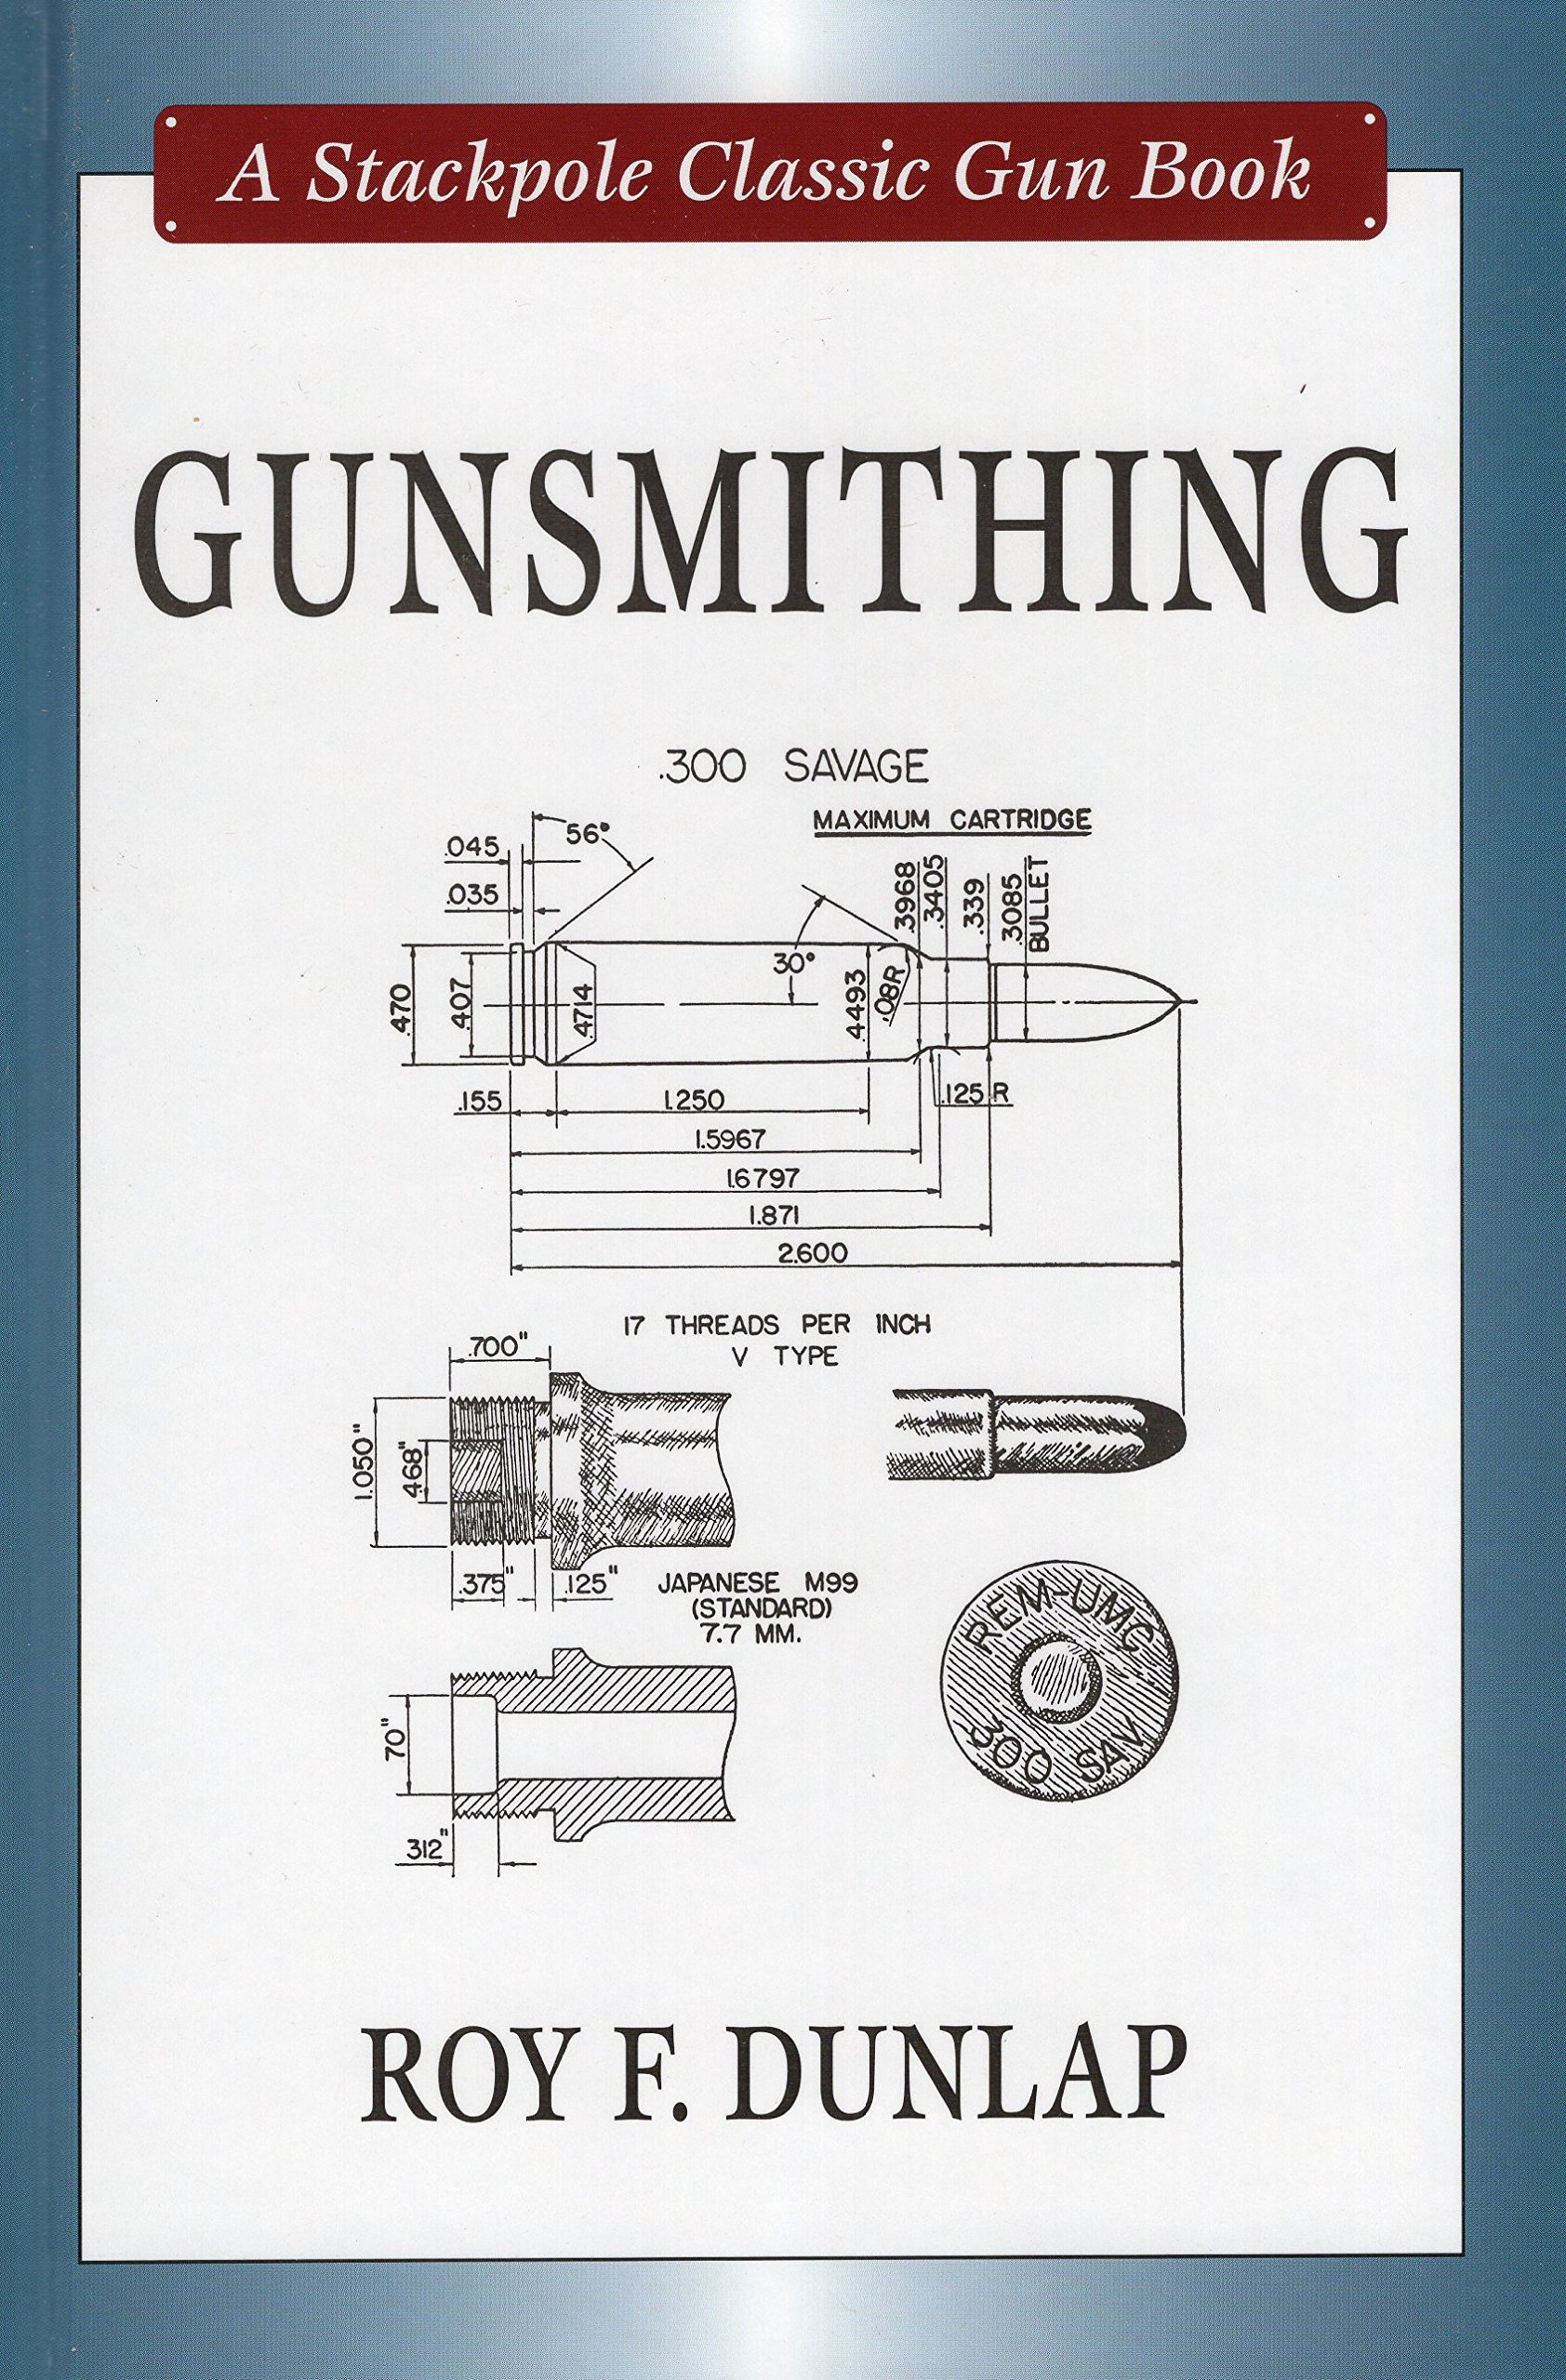 gunsmithing-stackpole-classic-gun-books